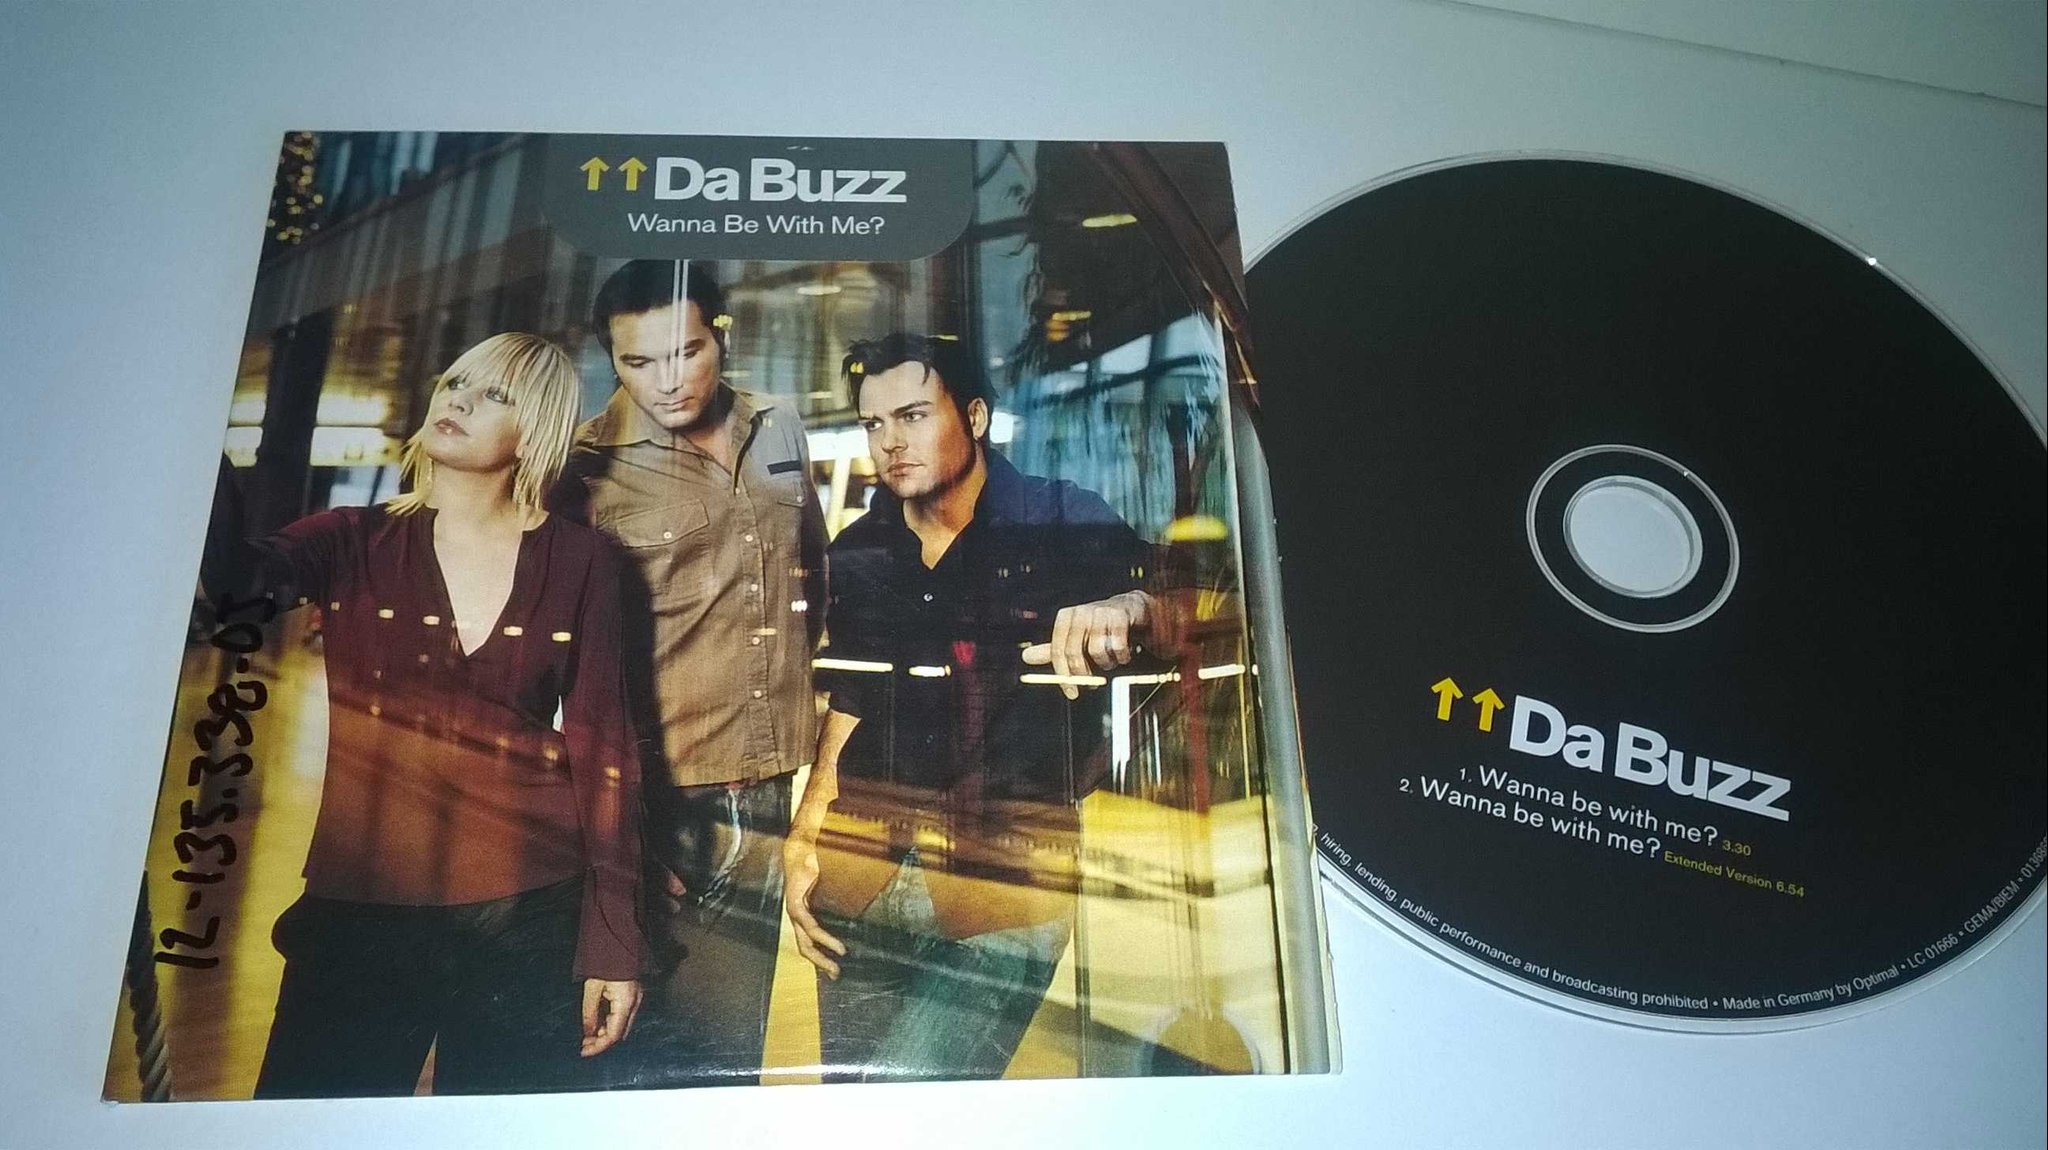 Da buzz - Wanna be why me?, single CD